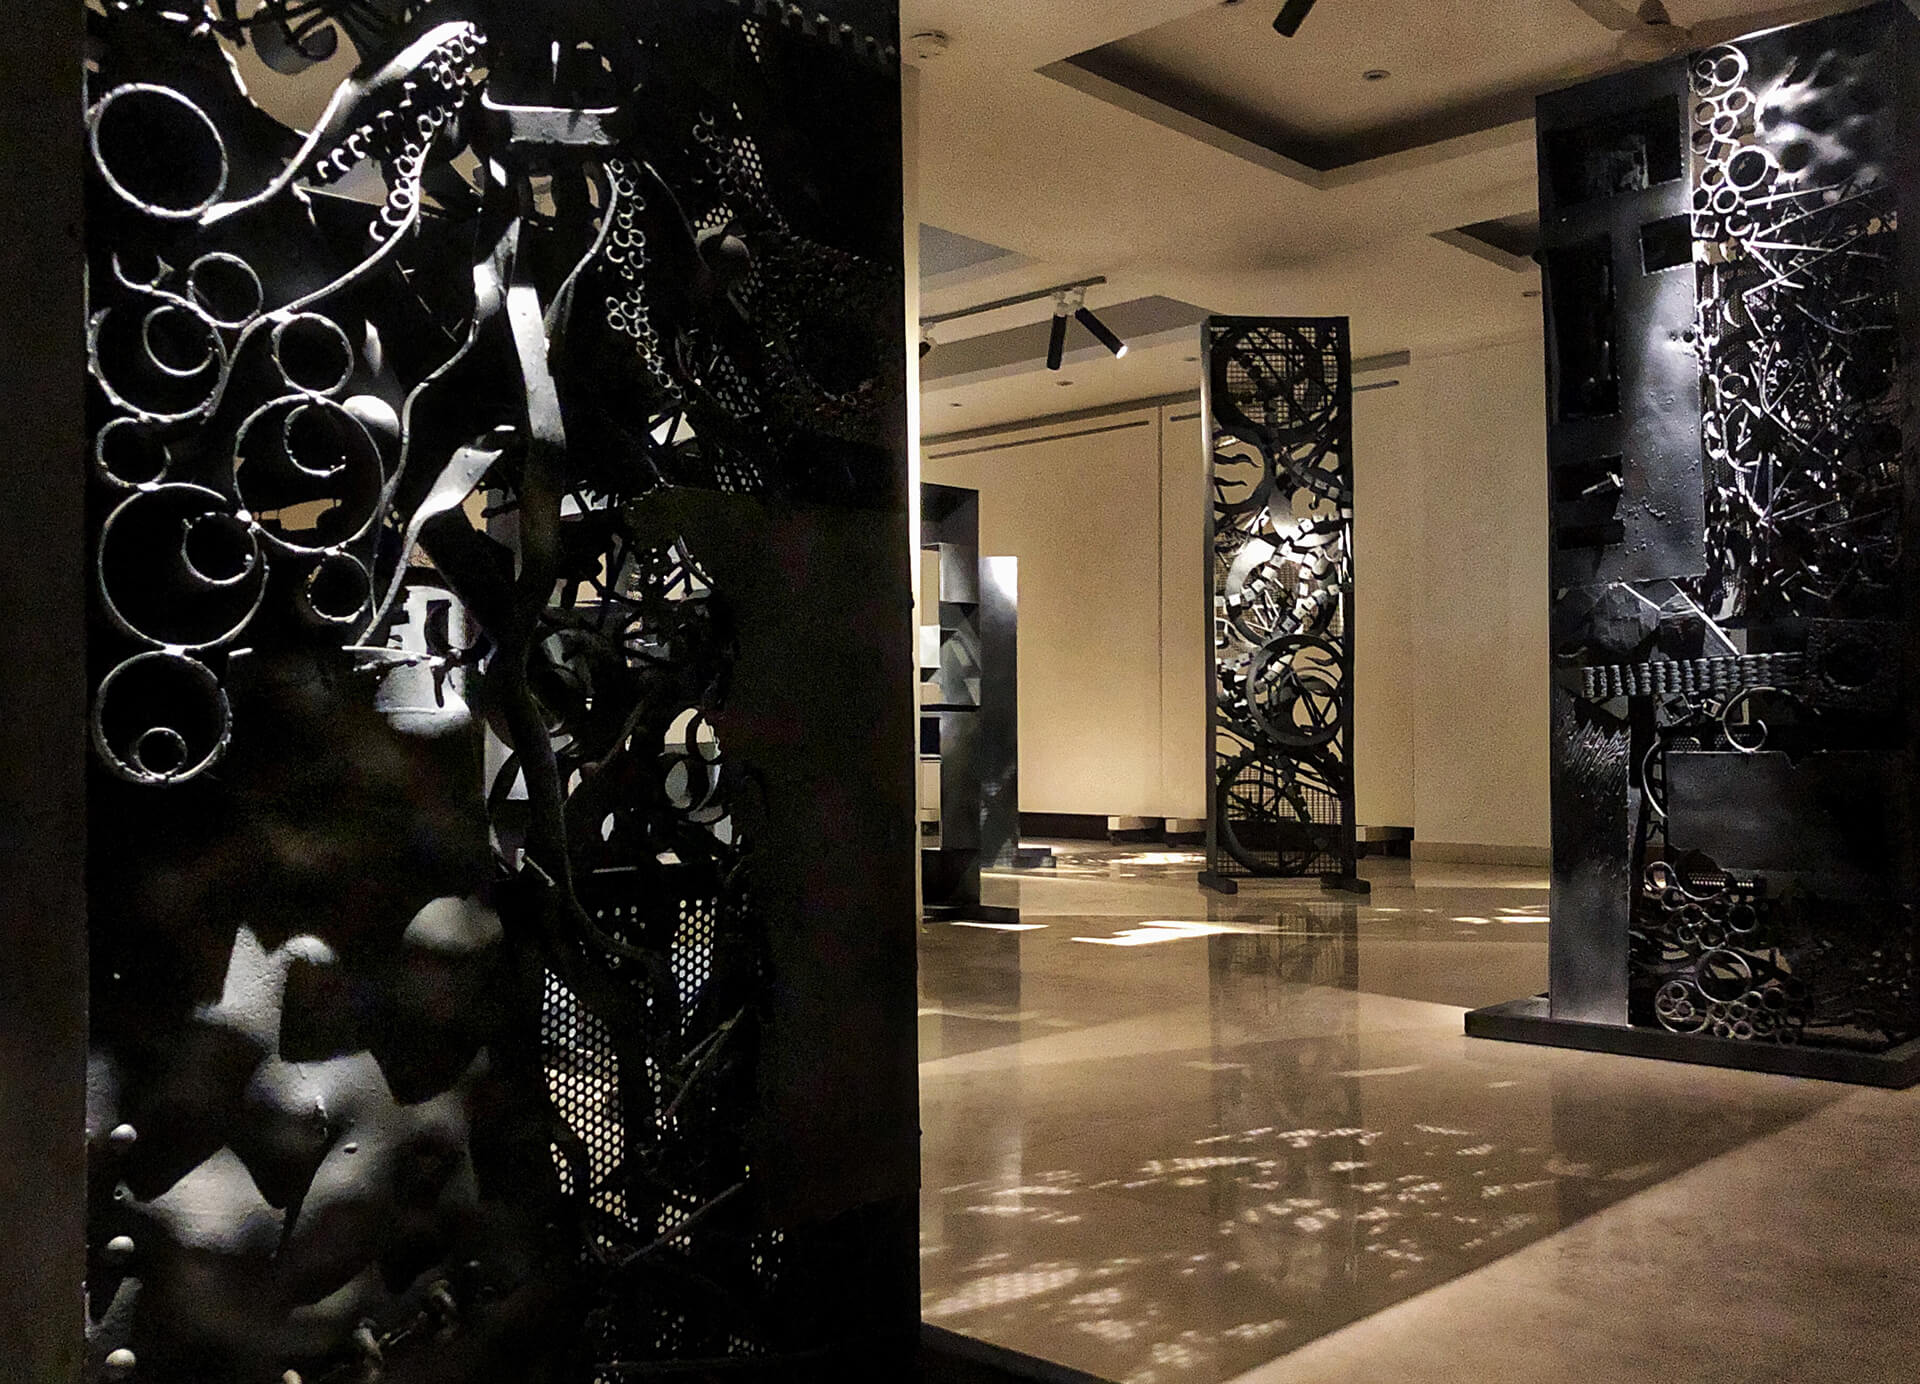 The Walls – a collection of 12 works created by hammering, molding and welding metals | The Walls | Arzan Khambatta | STIRworld